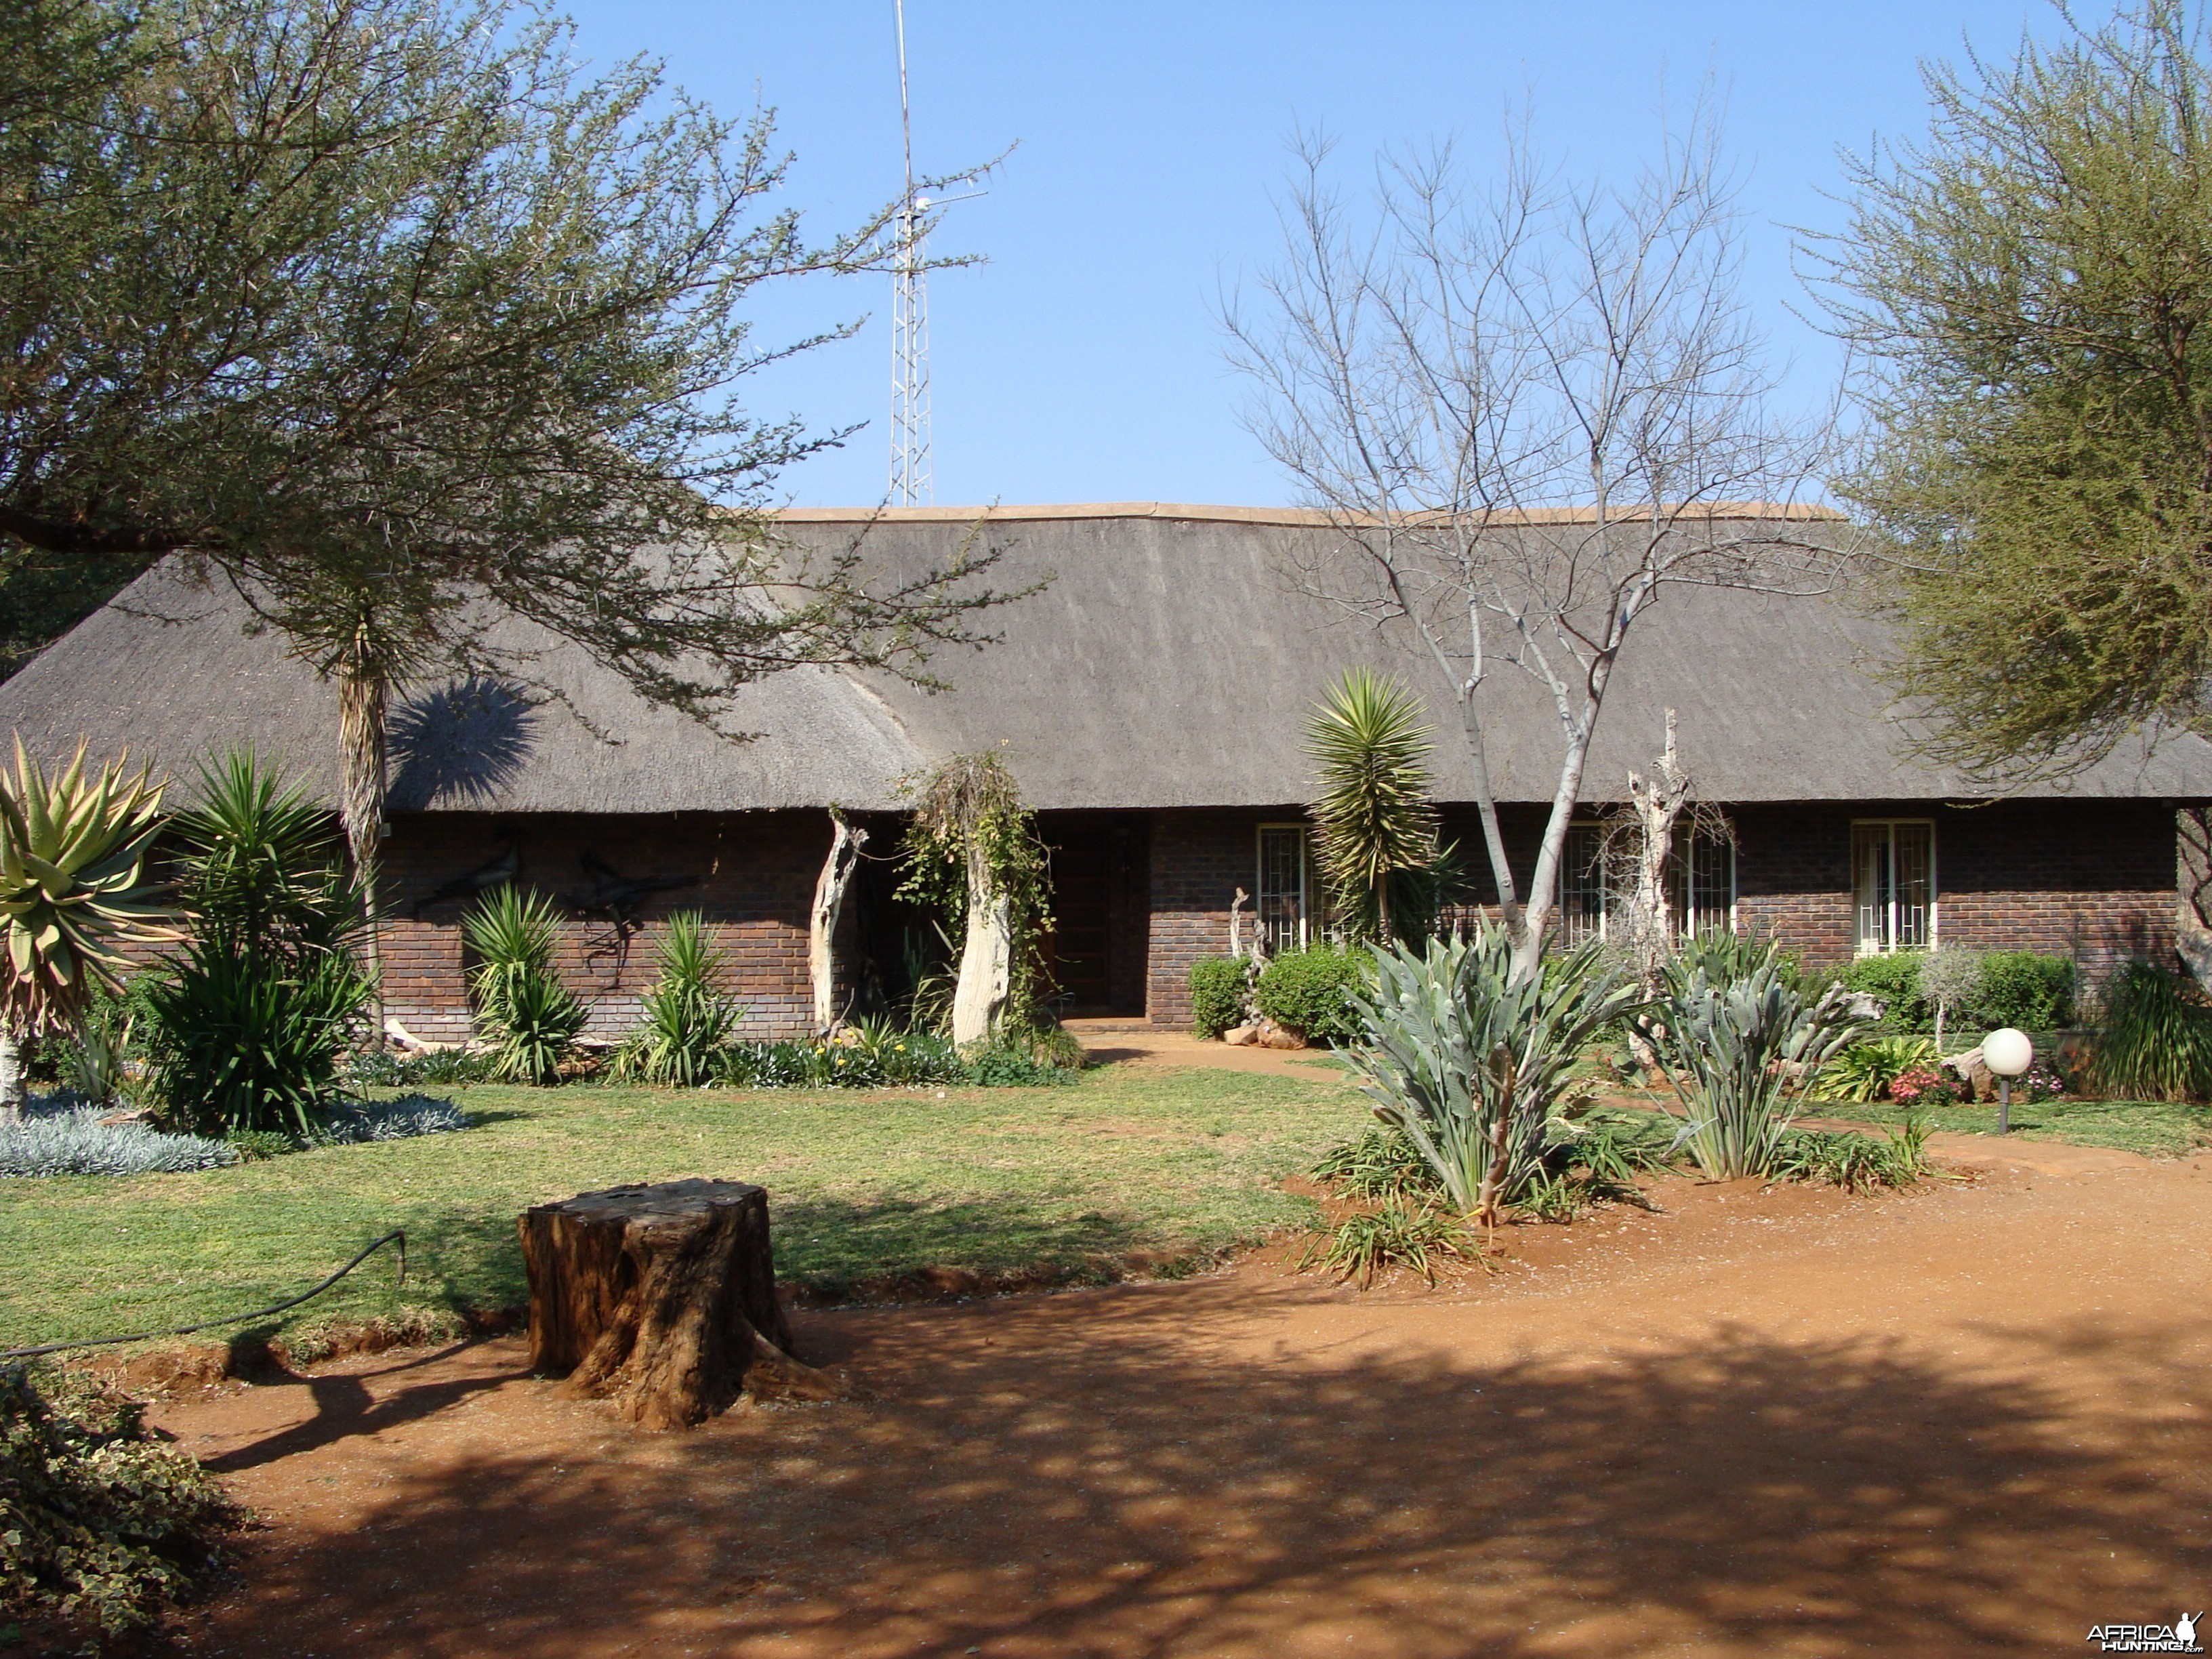 Citadel Lodge at Dries Visser Safaris